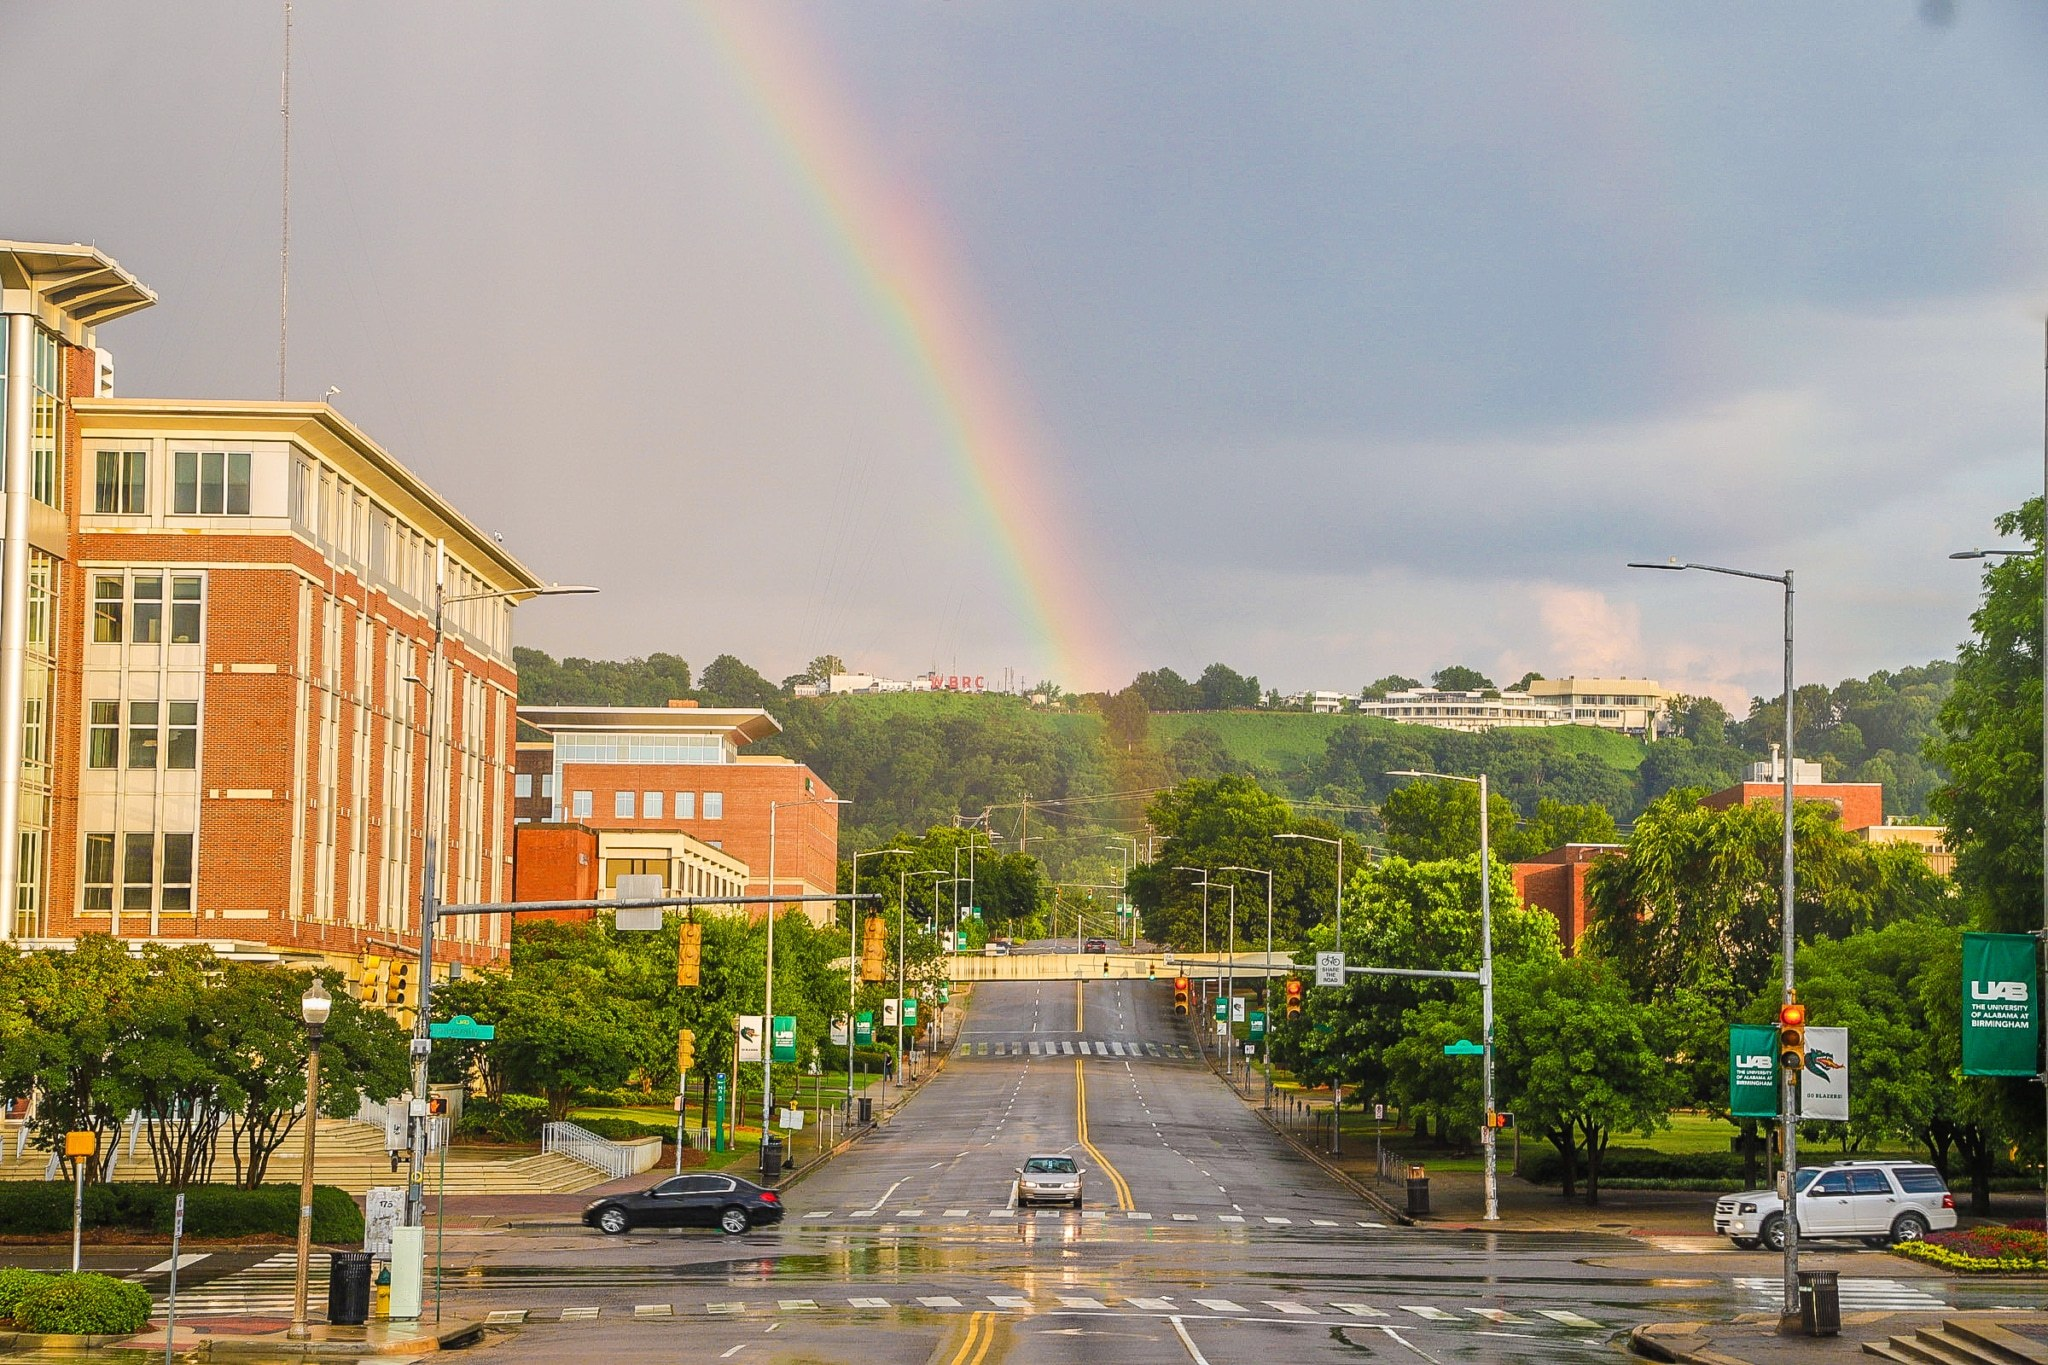 Breaking: Rainbows appear over Birmingham during the Summer Solstice (photos)